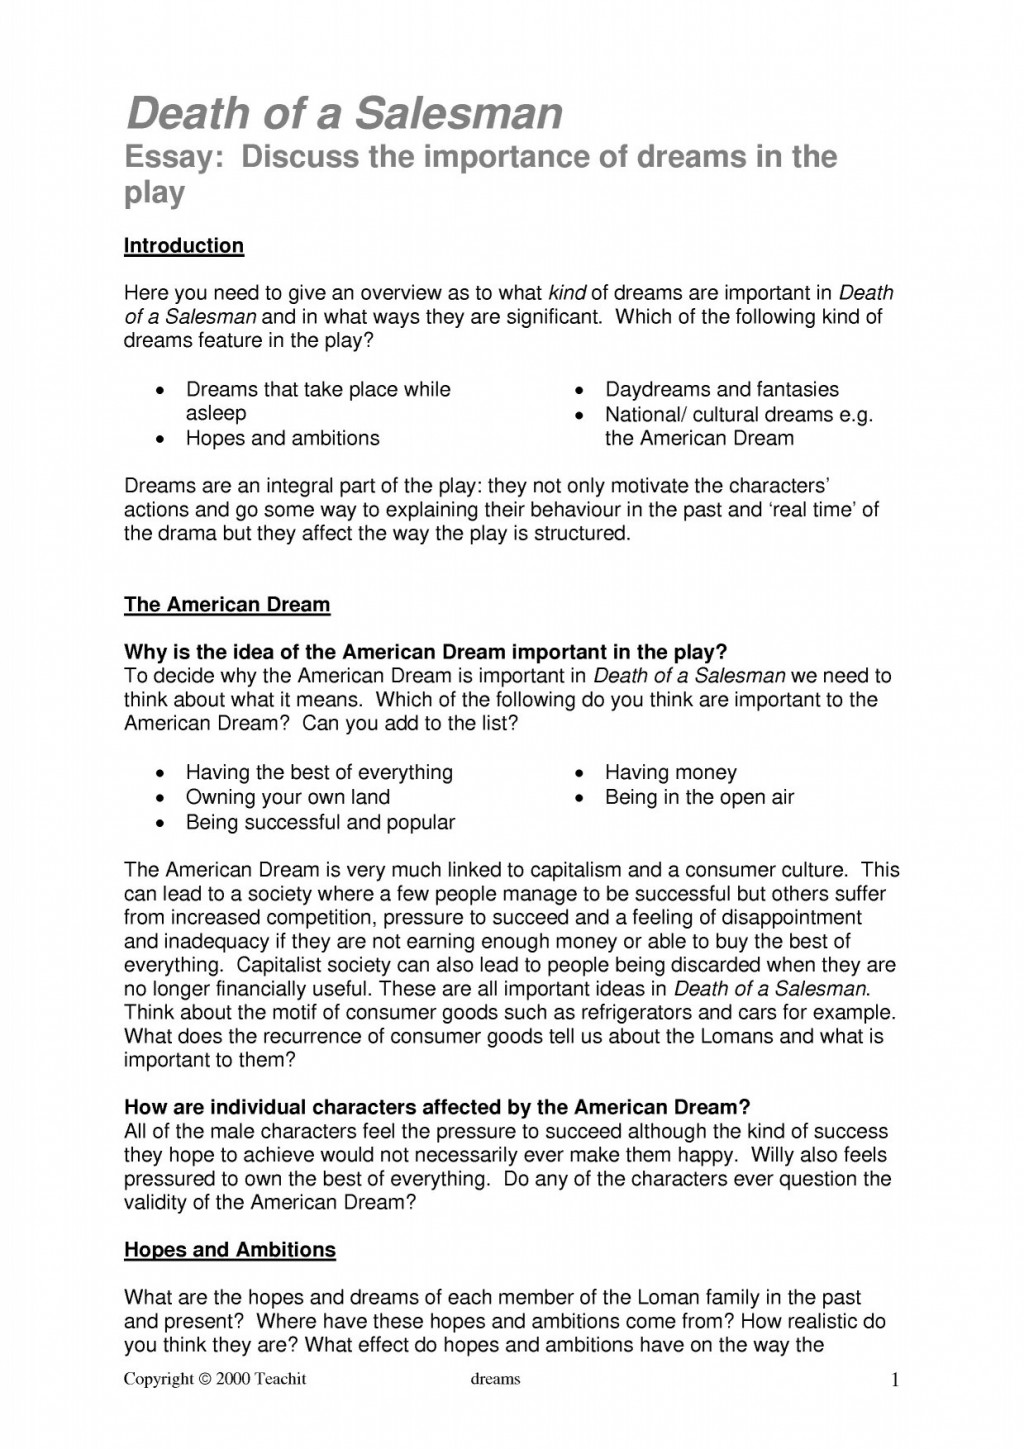 012 Creative Essay Example Bunch Ideas Of Hope Sample Best Photos Writing Fantastic An On Imposing English Examples Titles About Education Definition Large